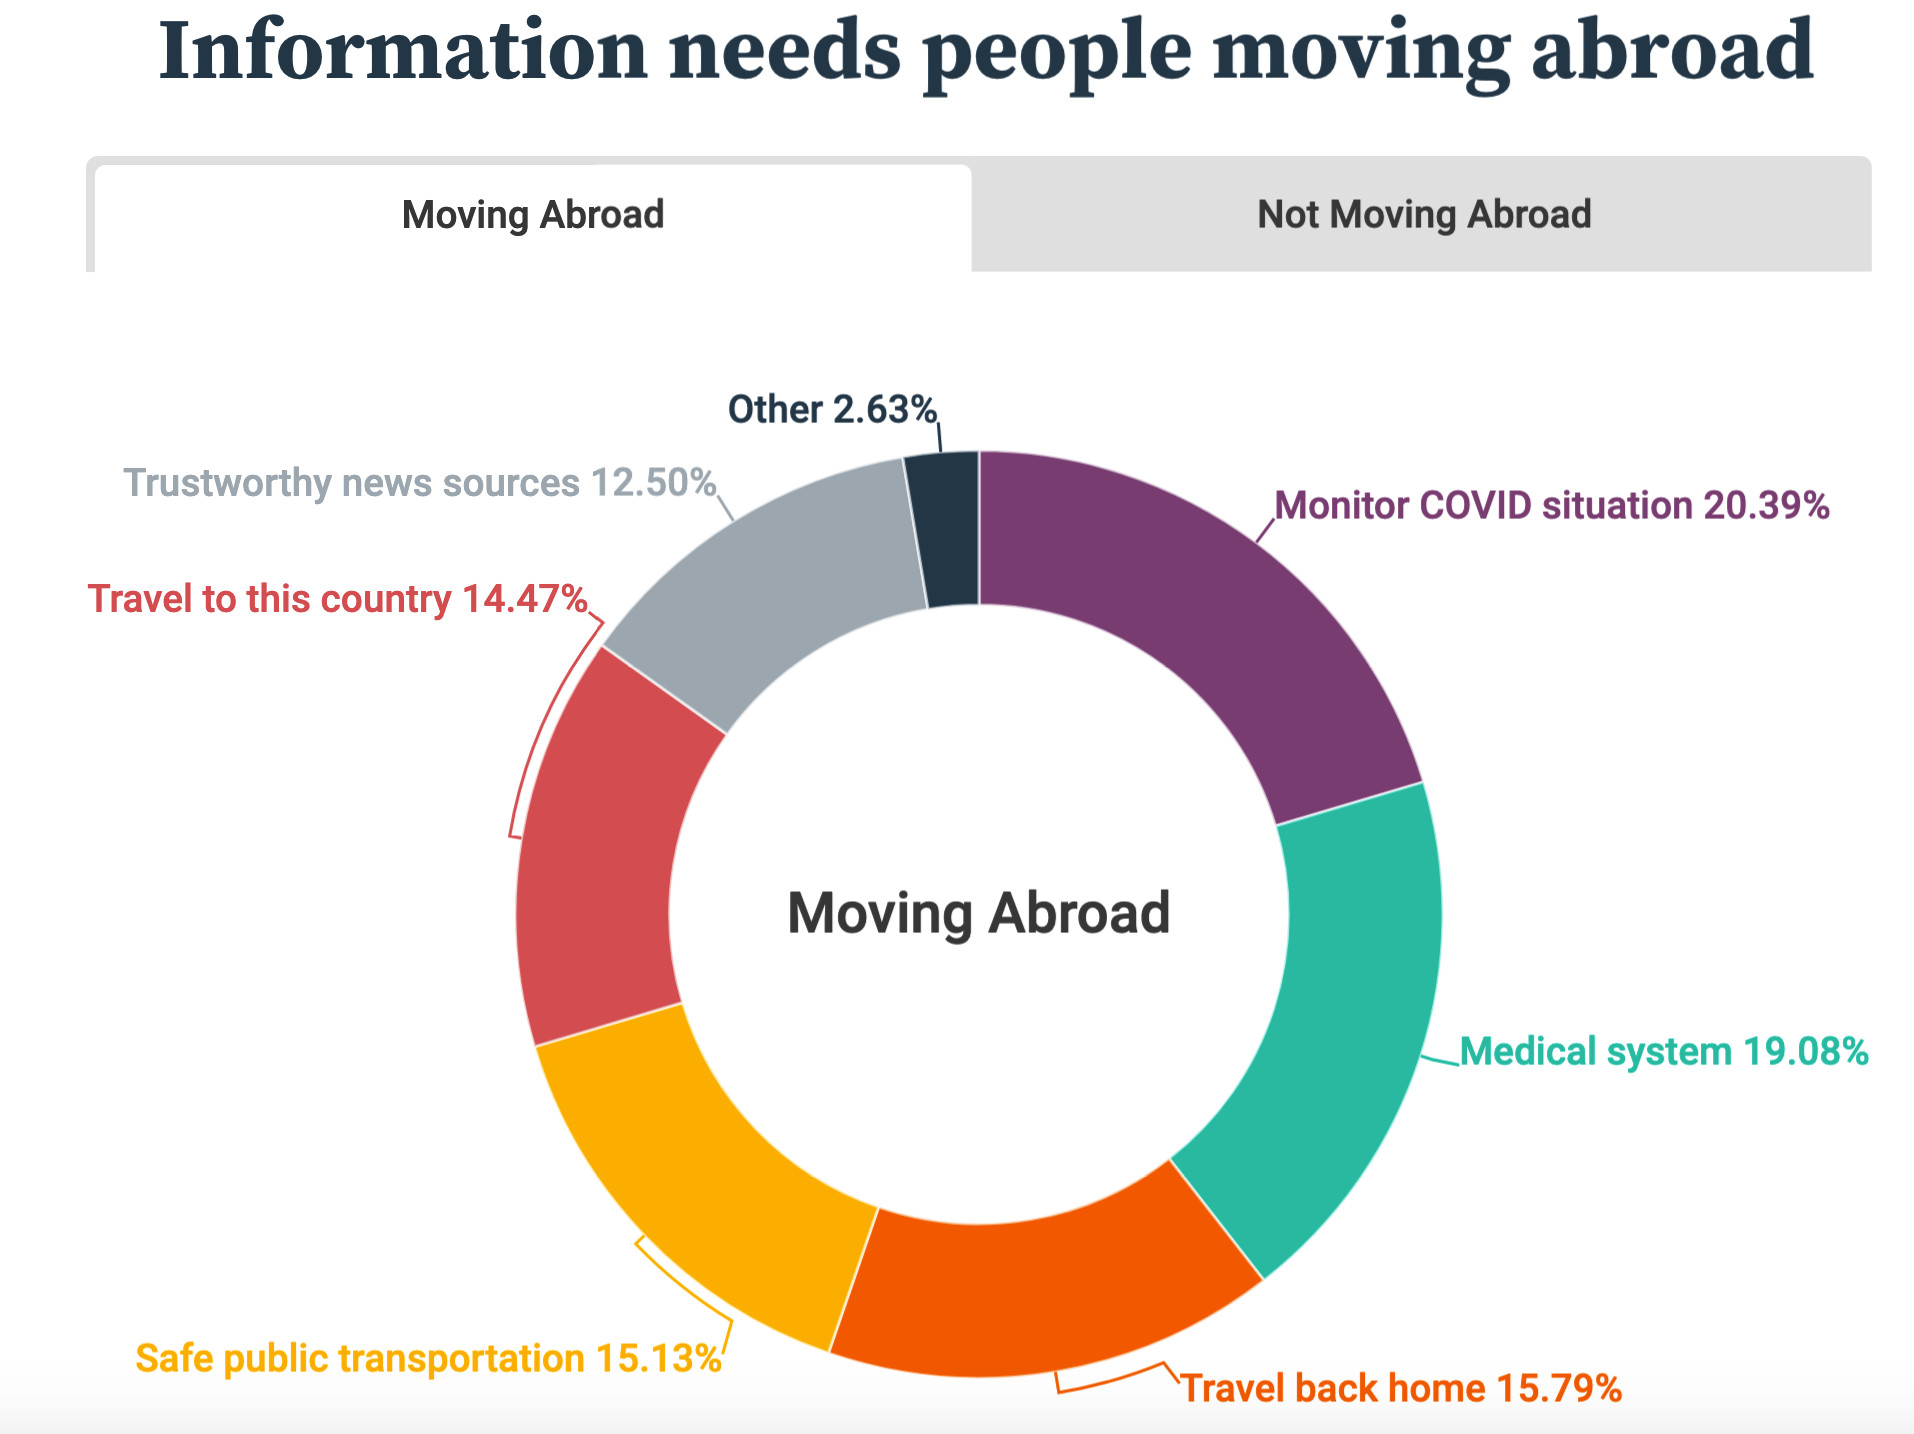 HousingAnywhere Information Need People Moving Abroad Survey September 2020